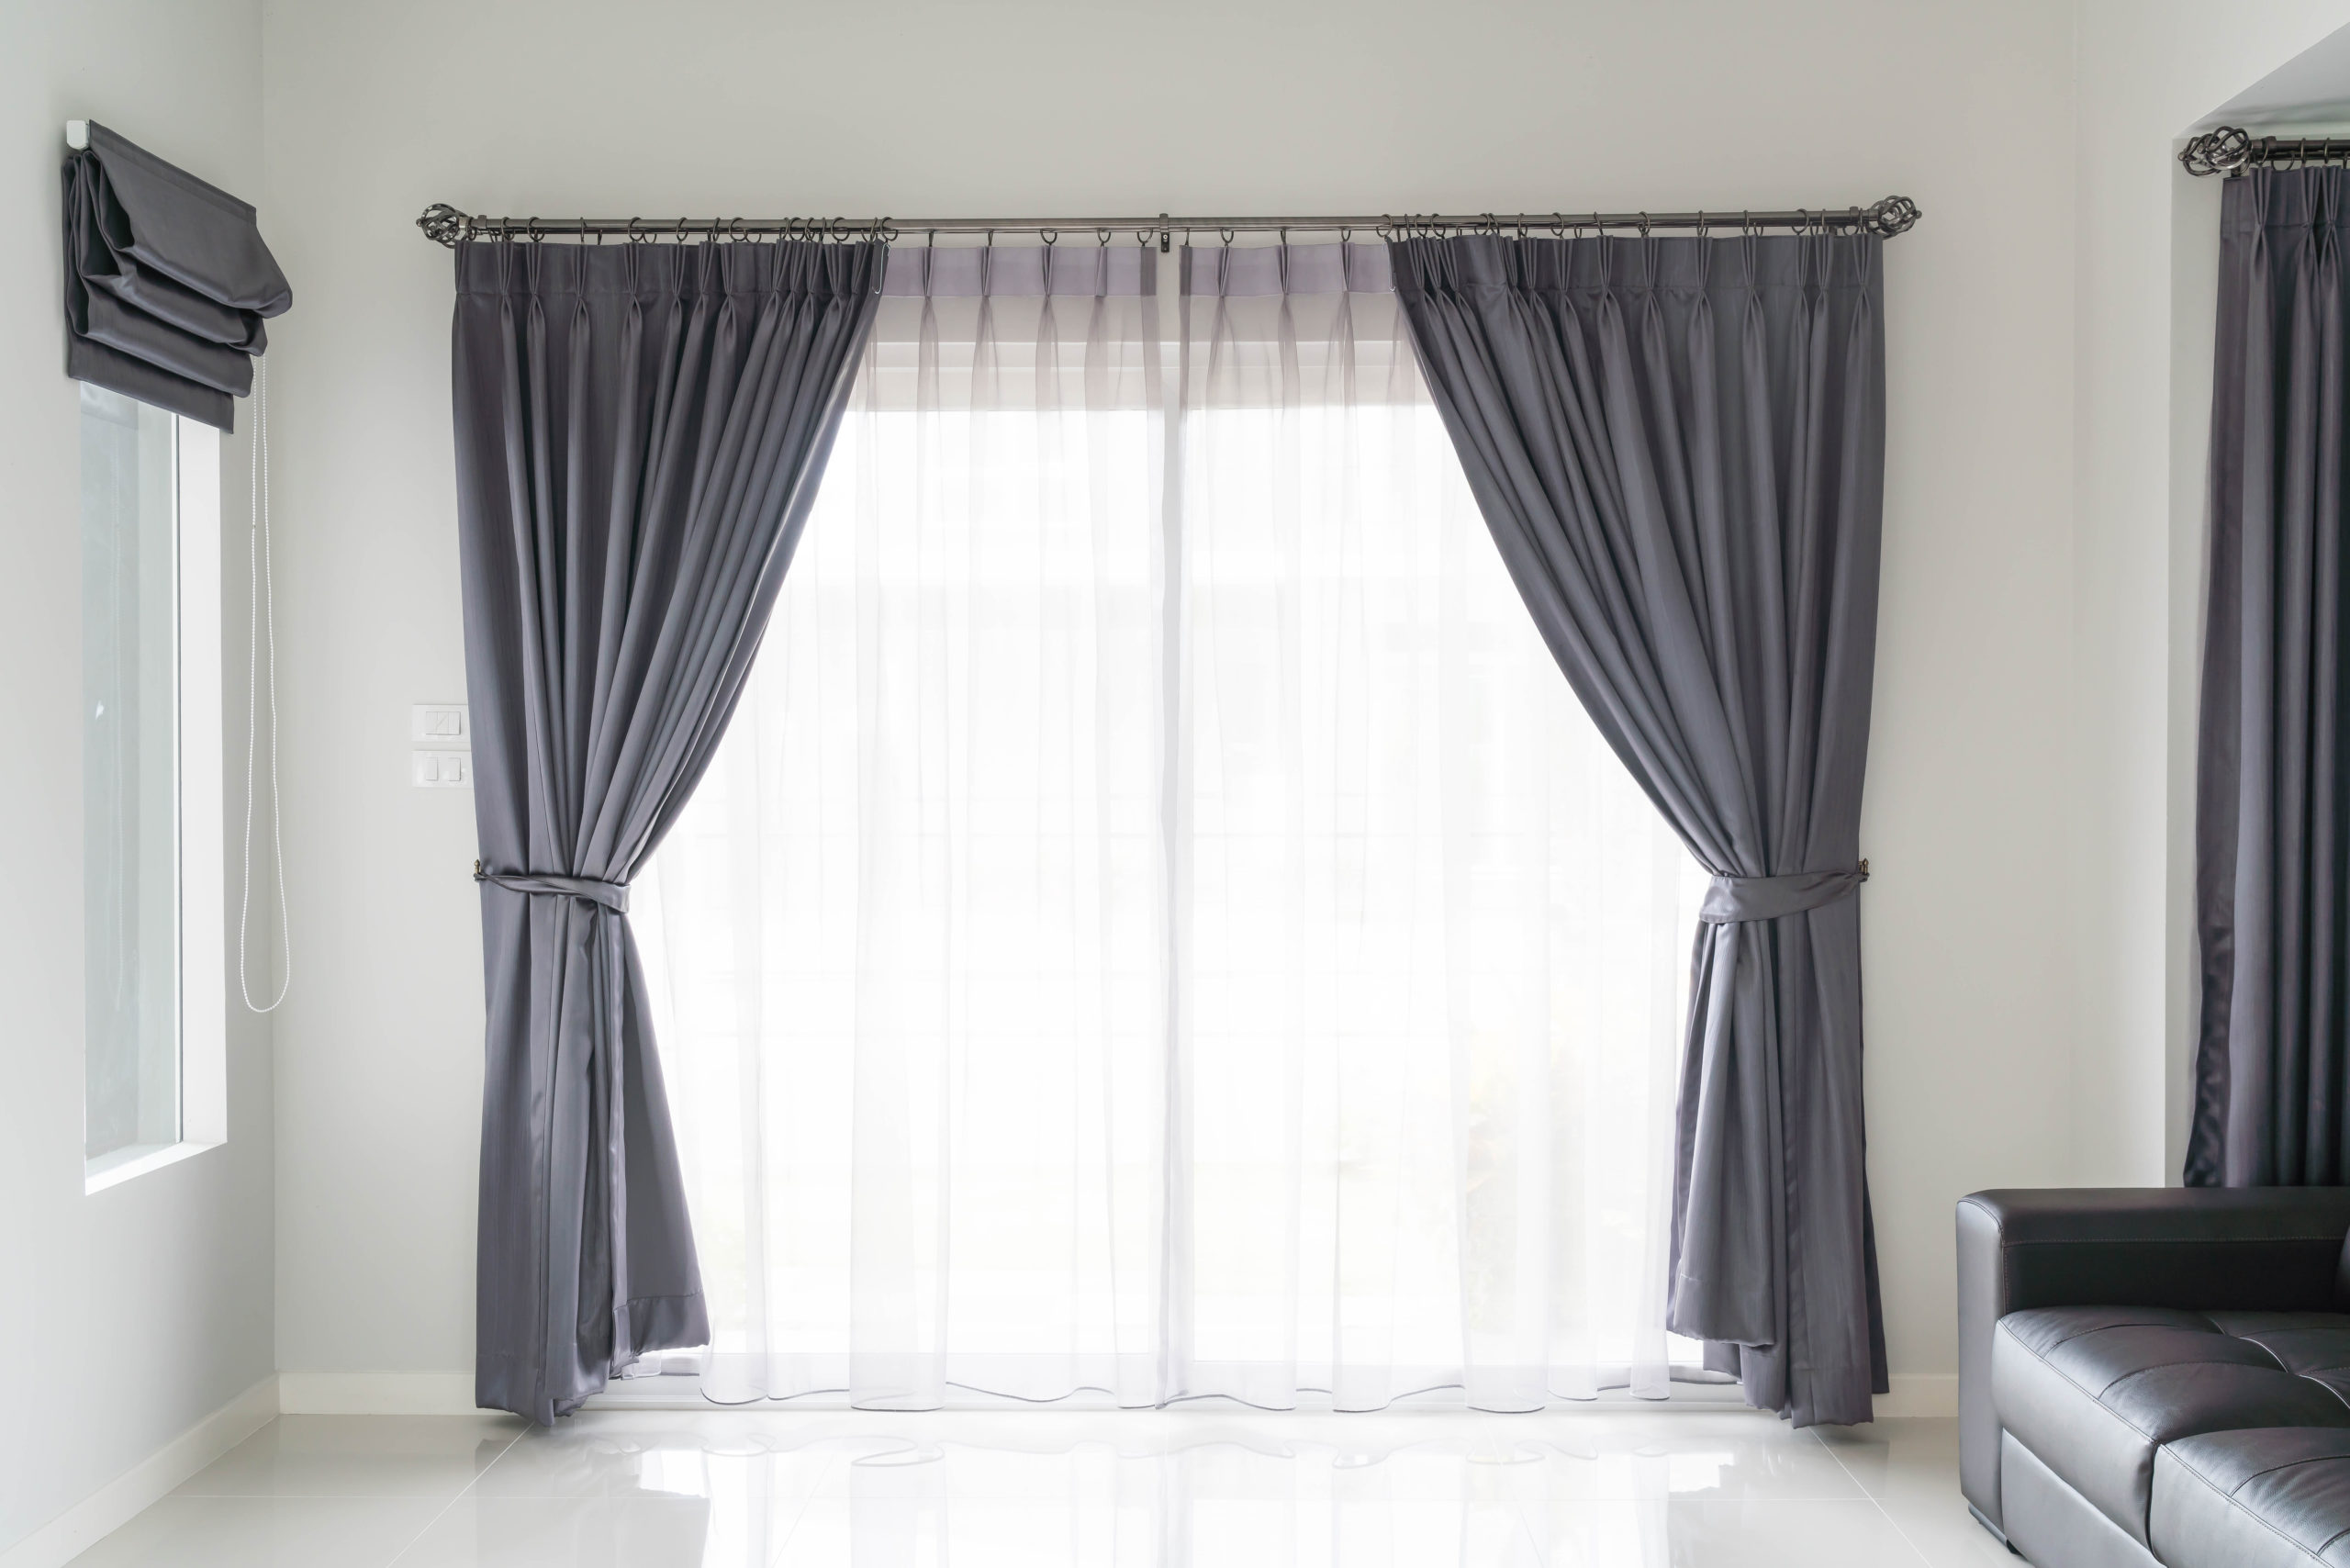 Curtain Linings – What's The Difference?